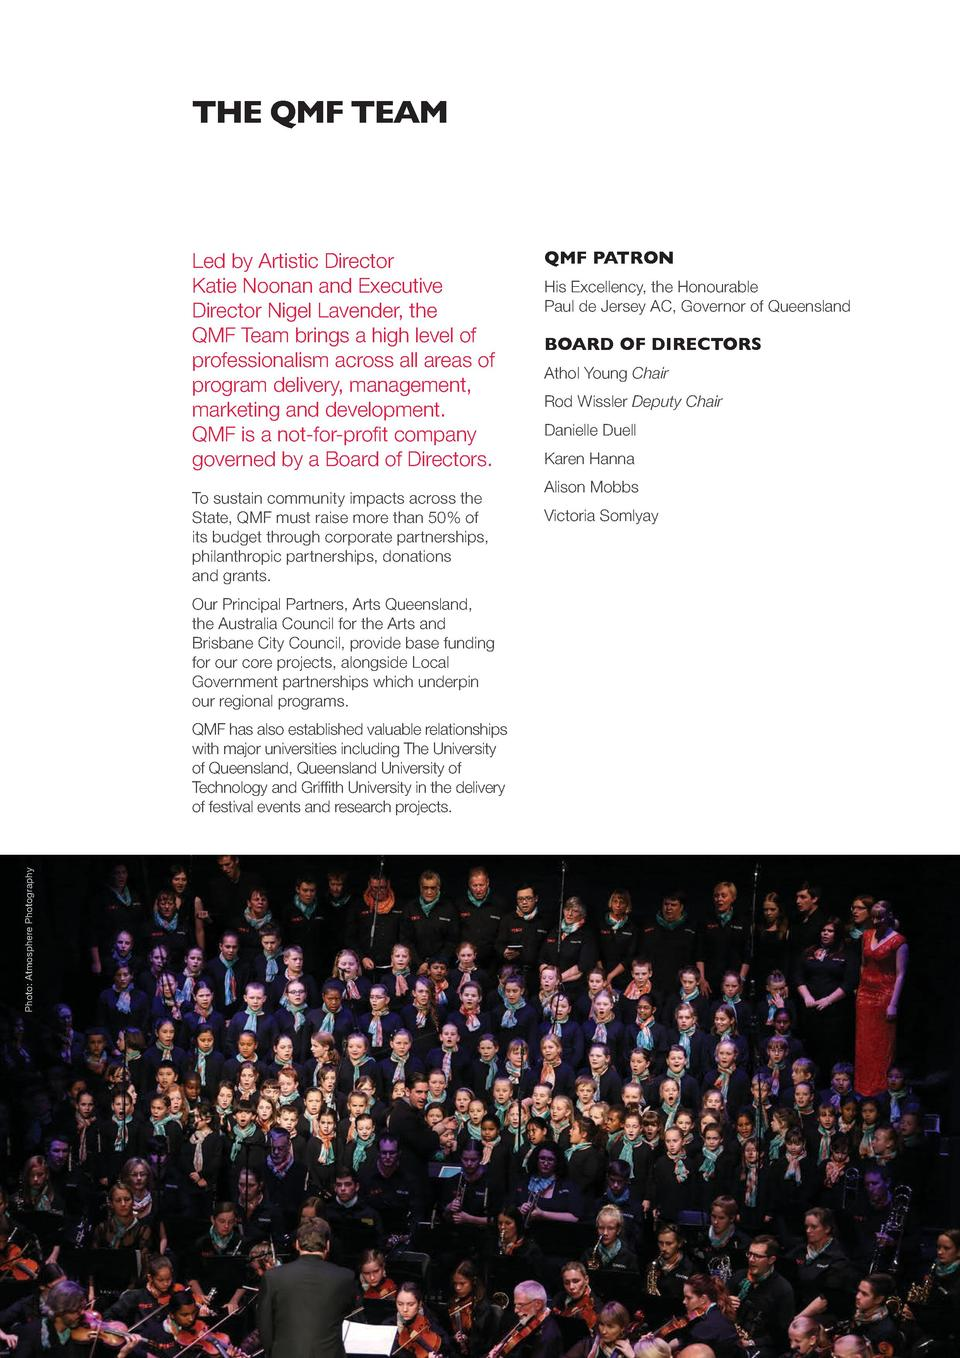 THE QMF TEAM  Led by Artistic Director Katie Noonan and Executive Director Nigel Lavender, the QMF  Team brings a high lev...